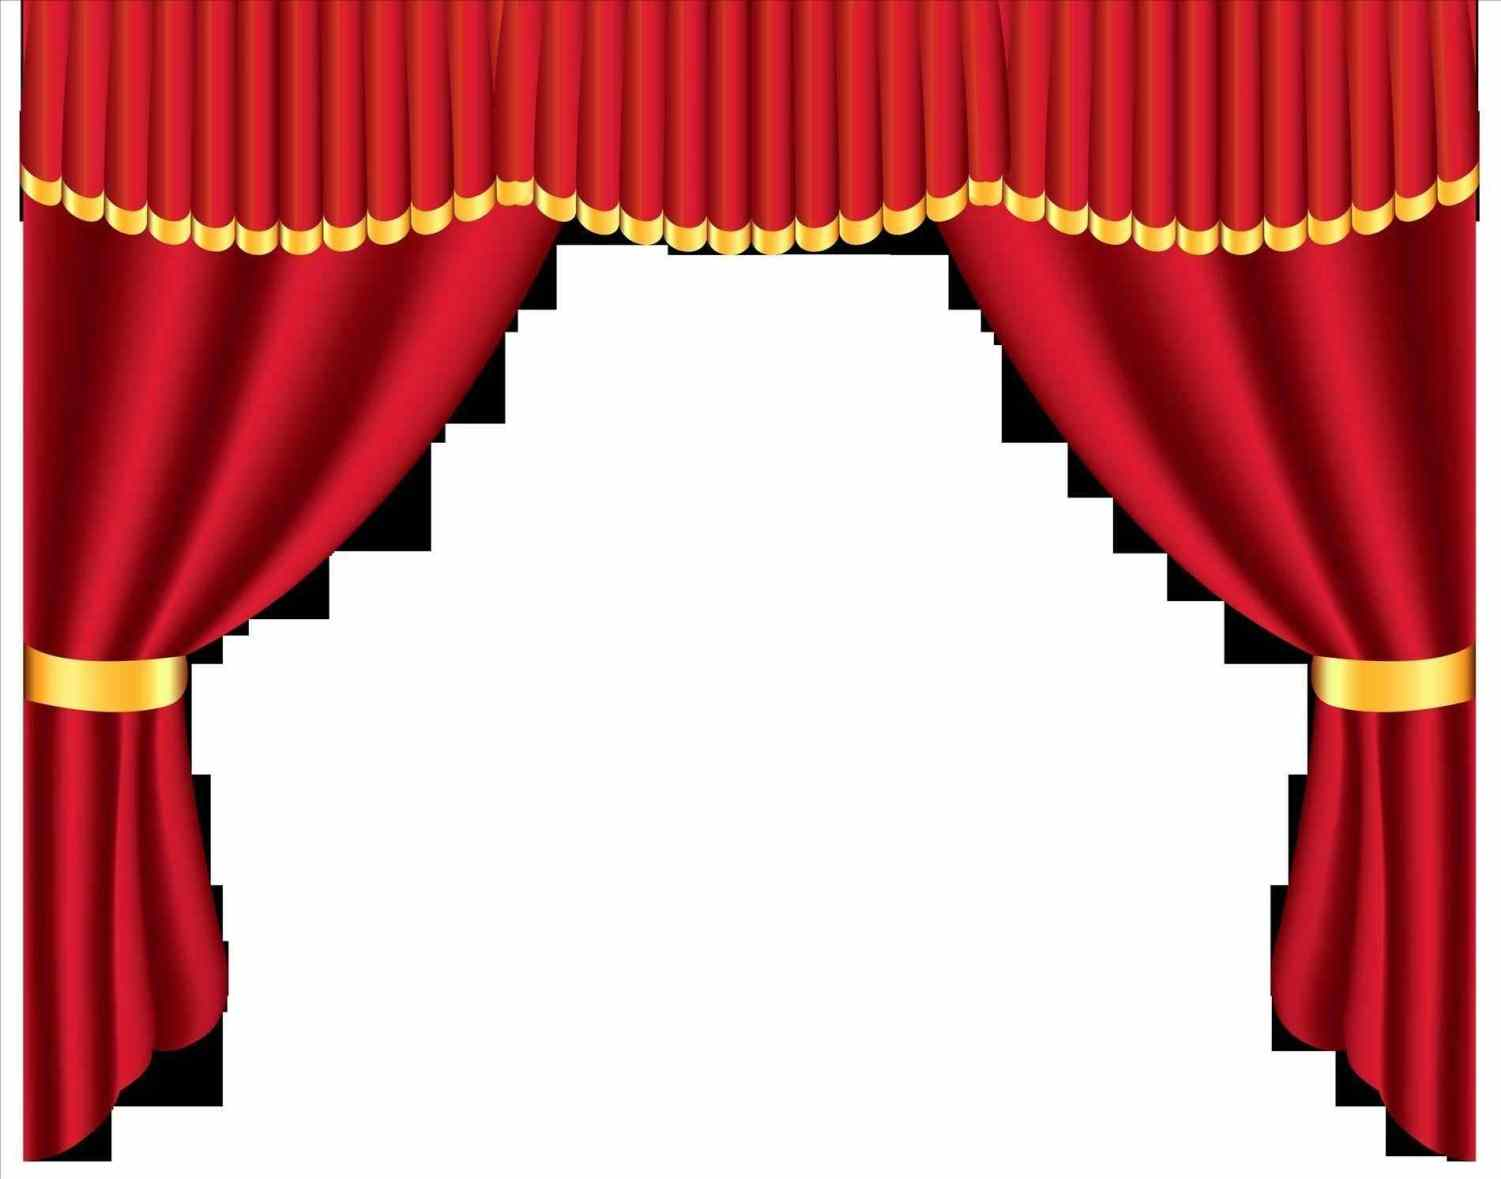 1501x1179 Curtains Stage Curtains Vector Curtain Illustration Stock